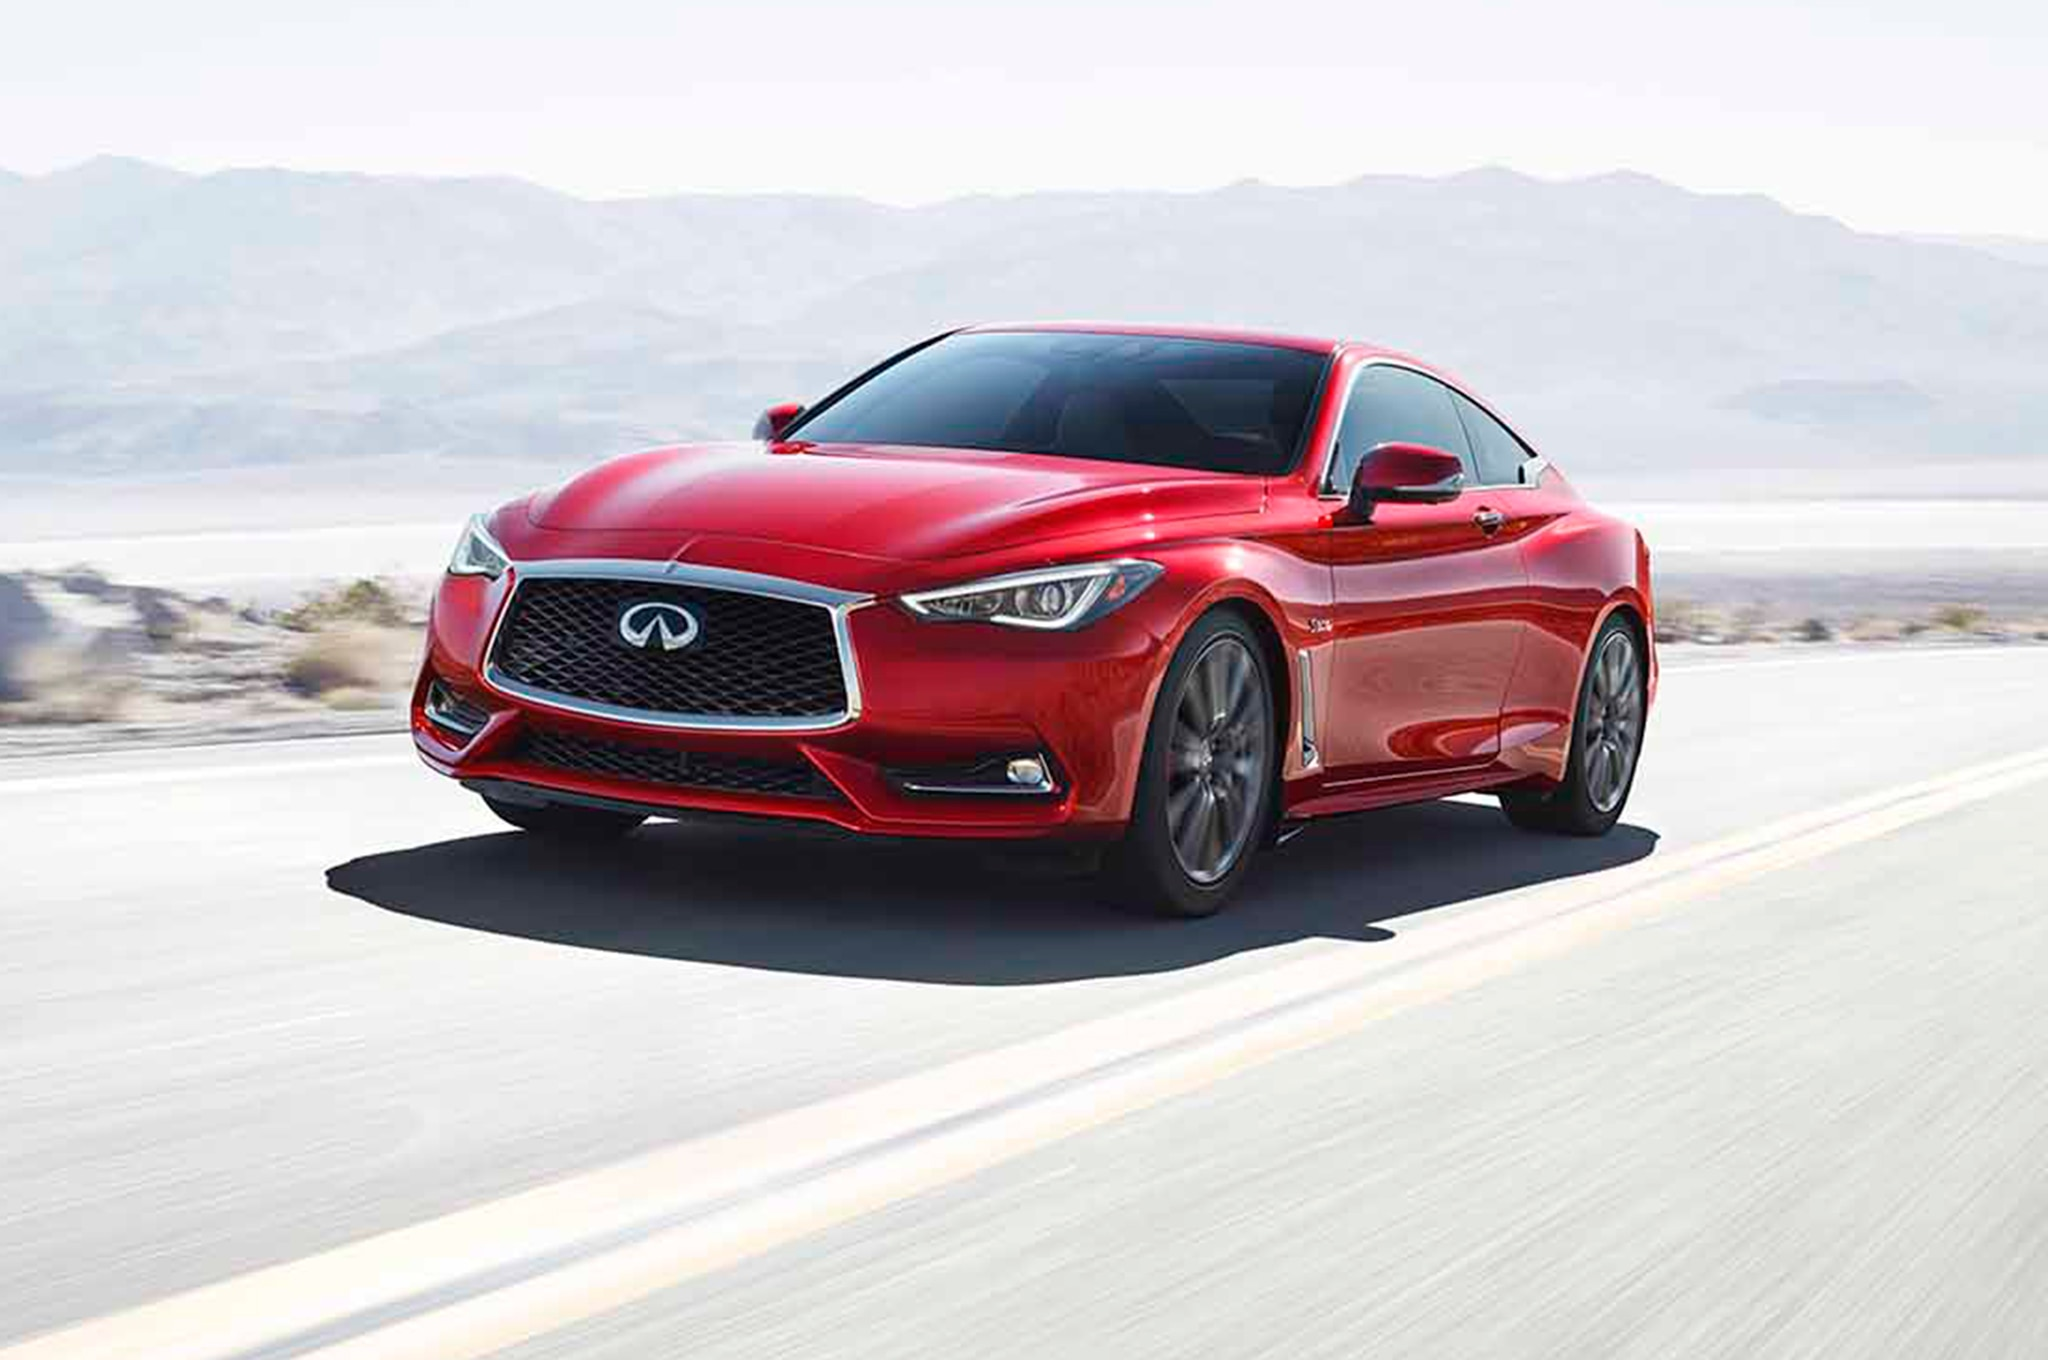 2017 infiniti q60 3 0t red sport 400 lease deals. Black Bedroom Furniture Sets. Home Design Ideas